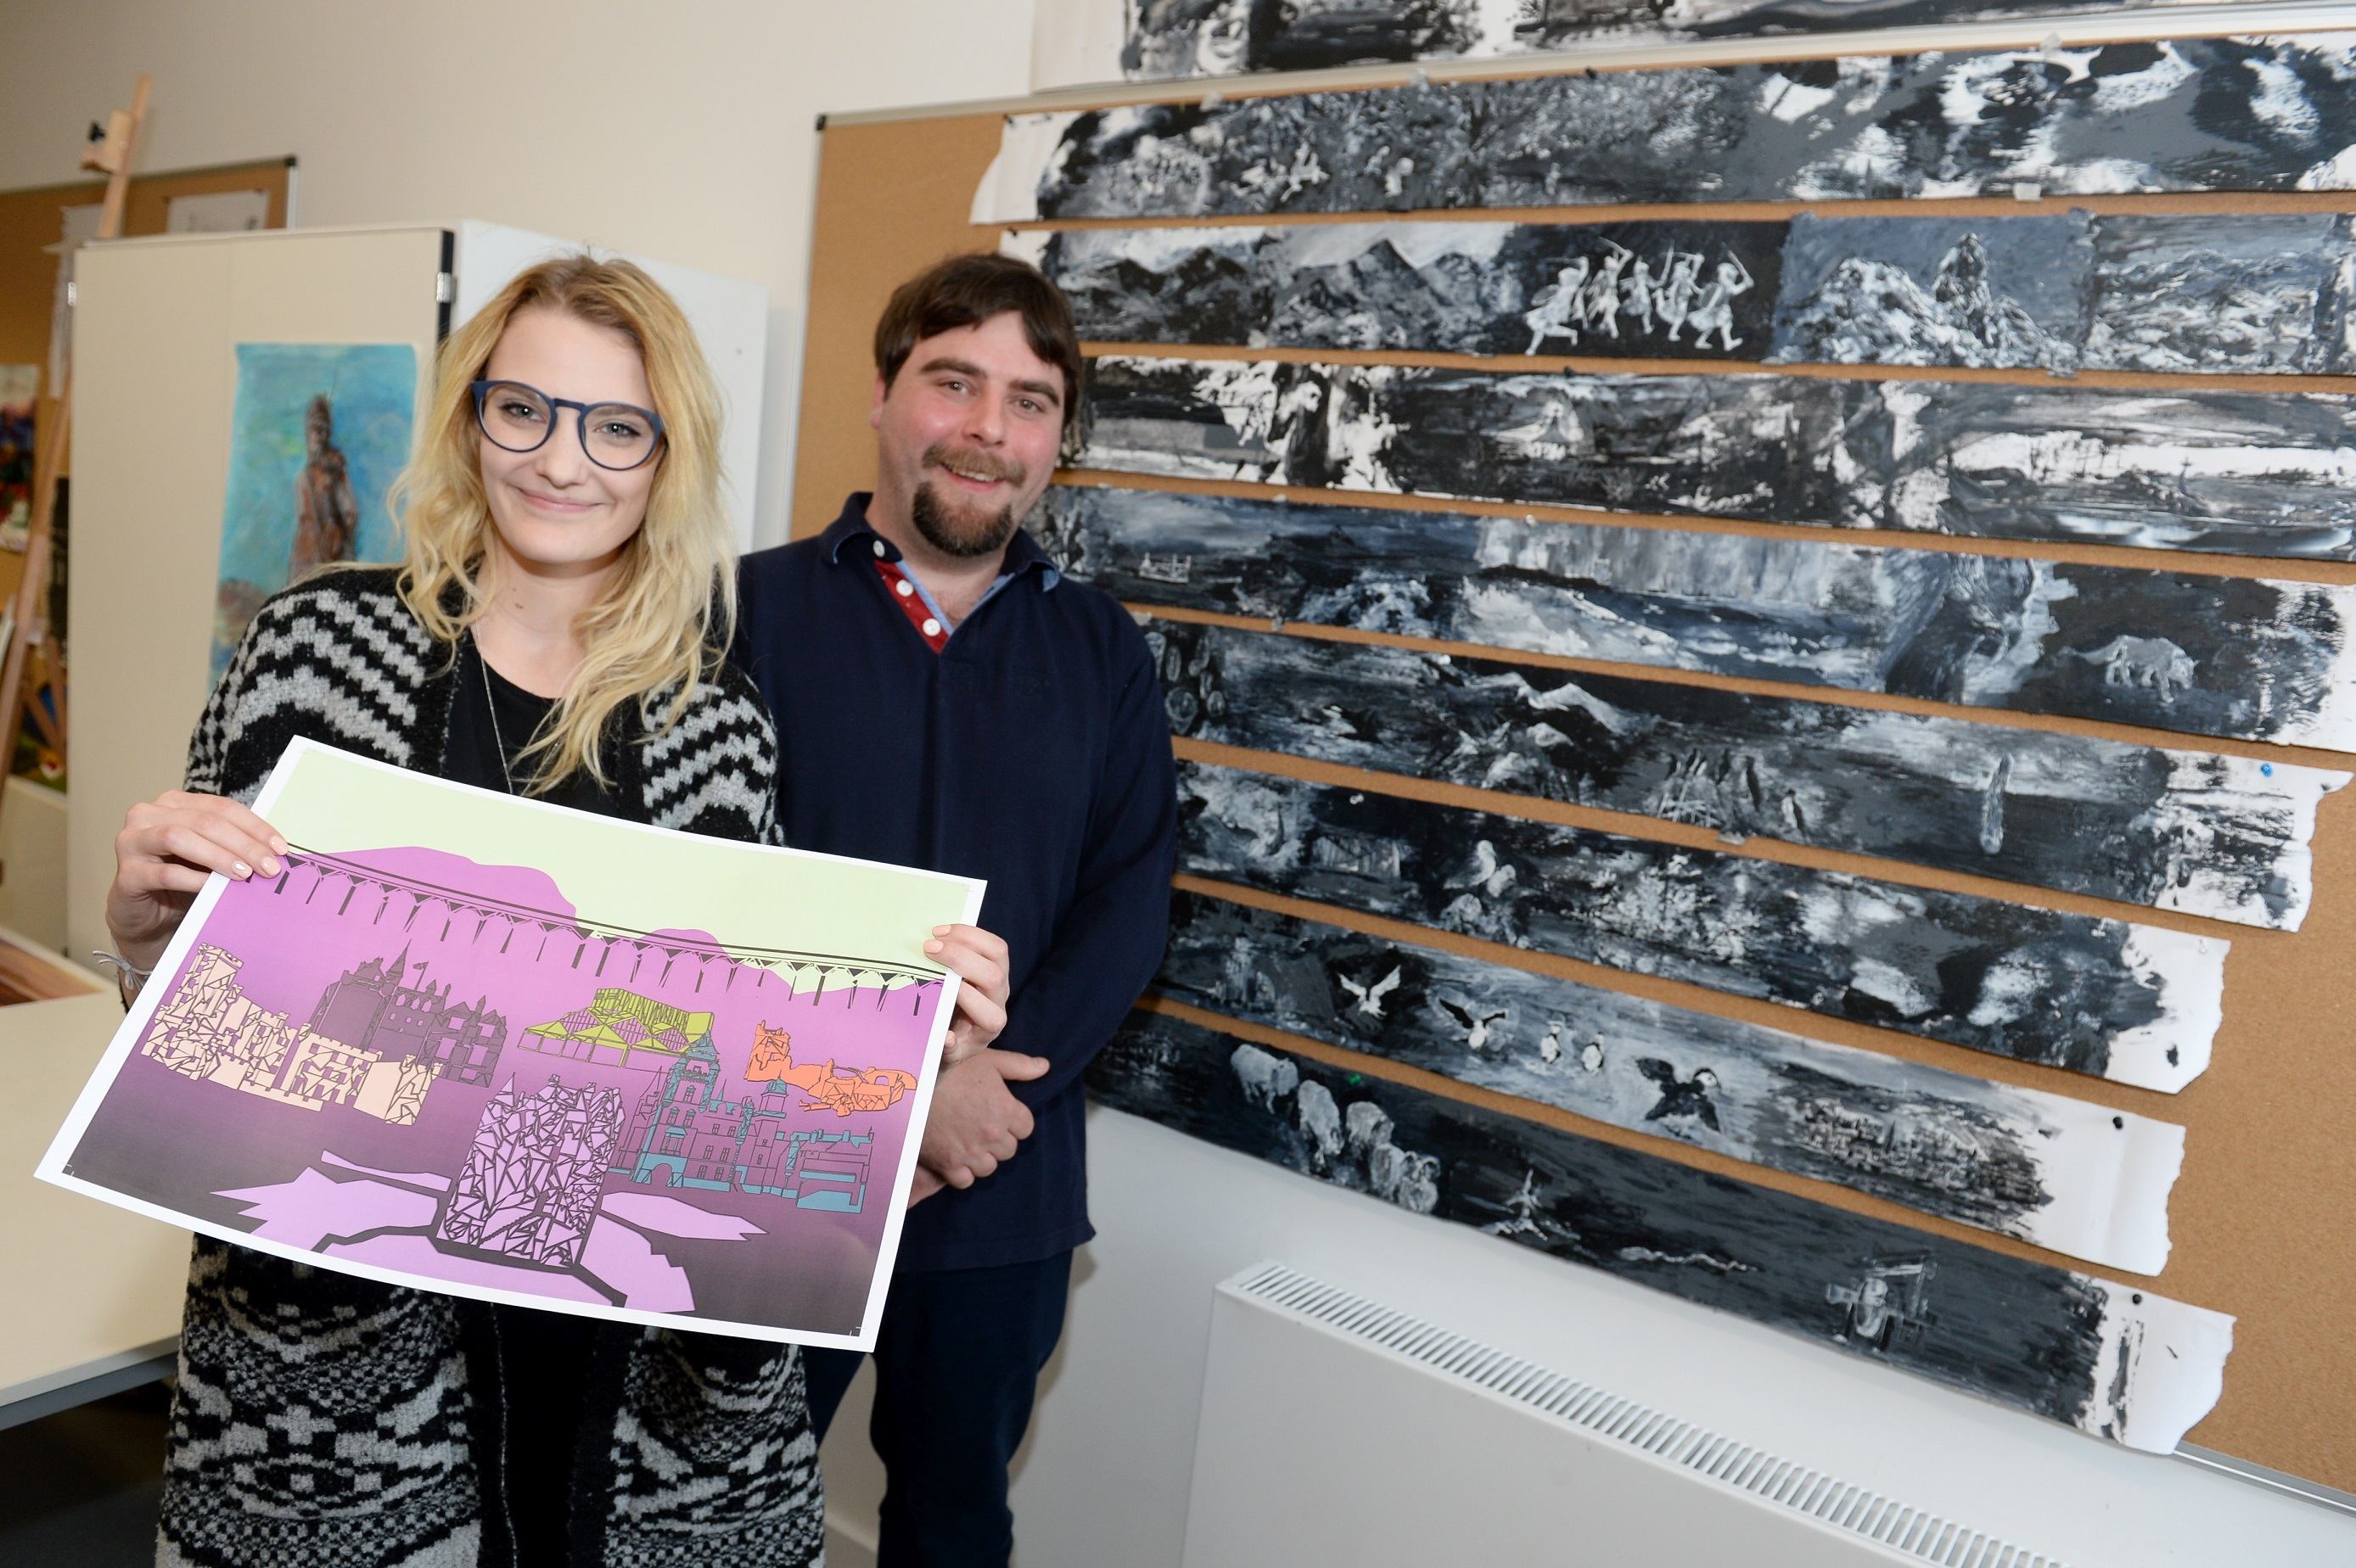 competition to design graphics for the Tourism Awards